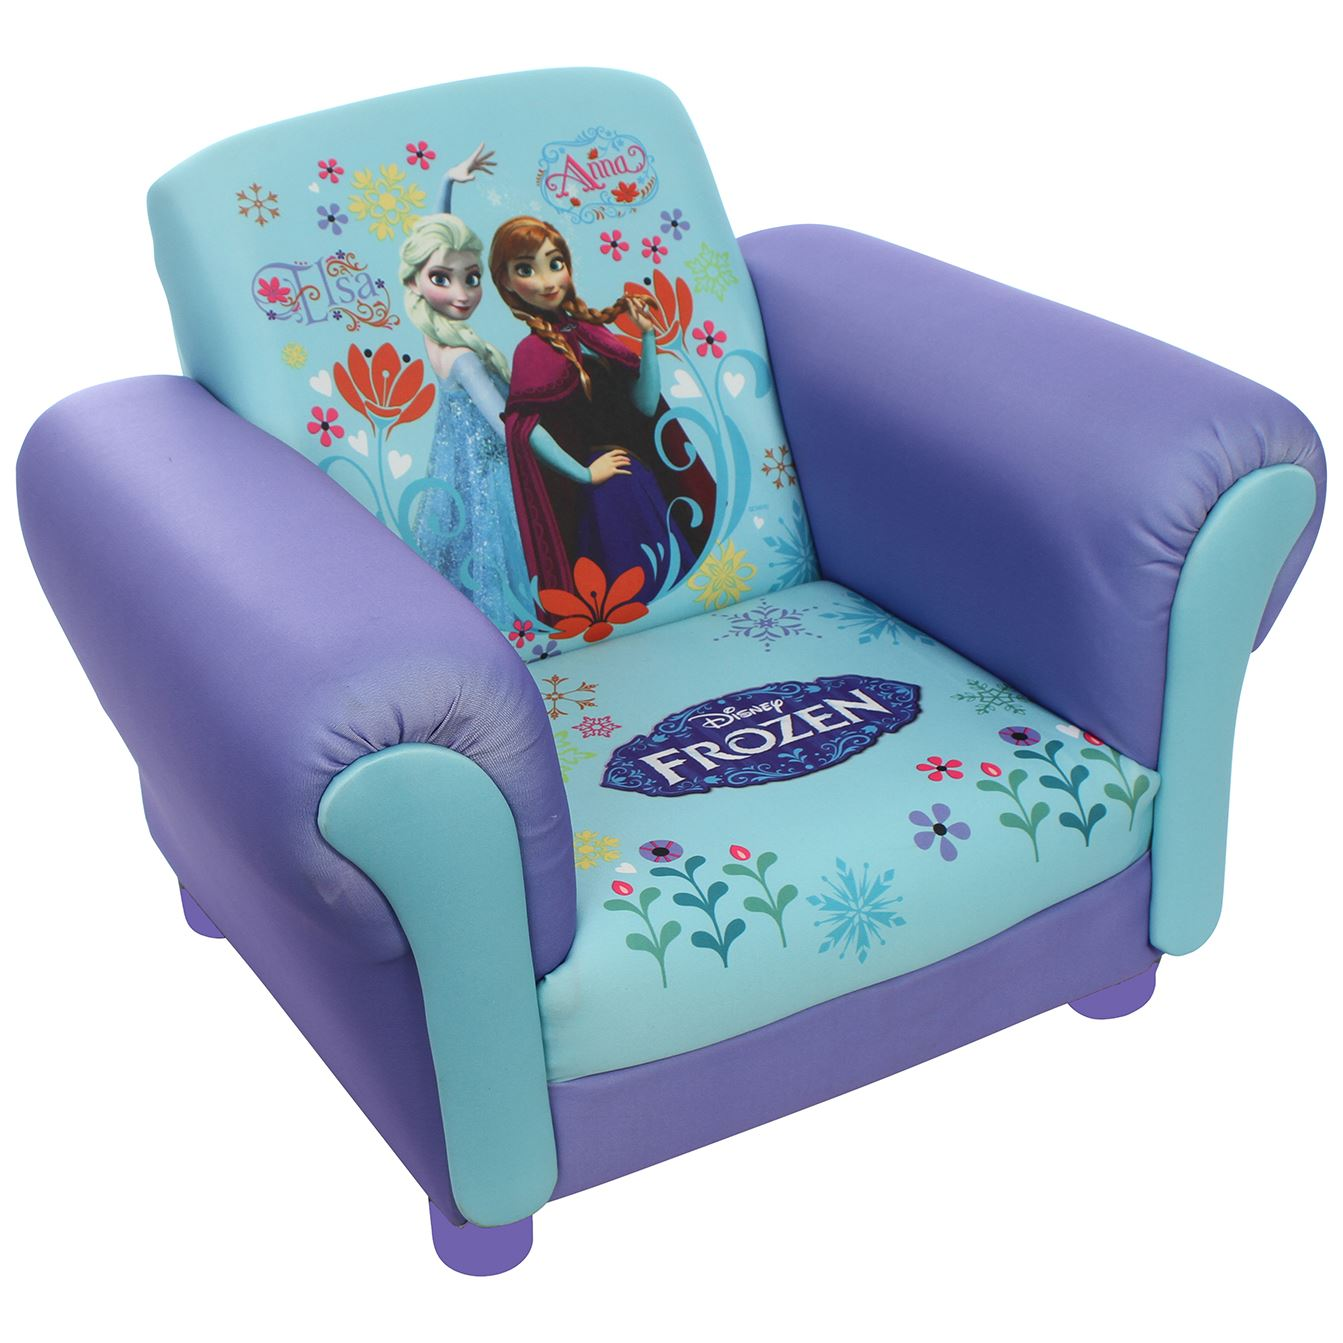 Toddler Chairs Children 39s Princess Frozen Elsa And Anna Upholstered Chair